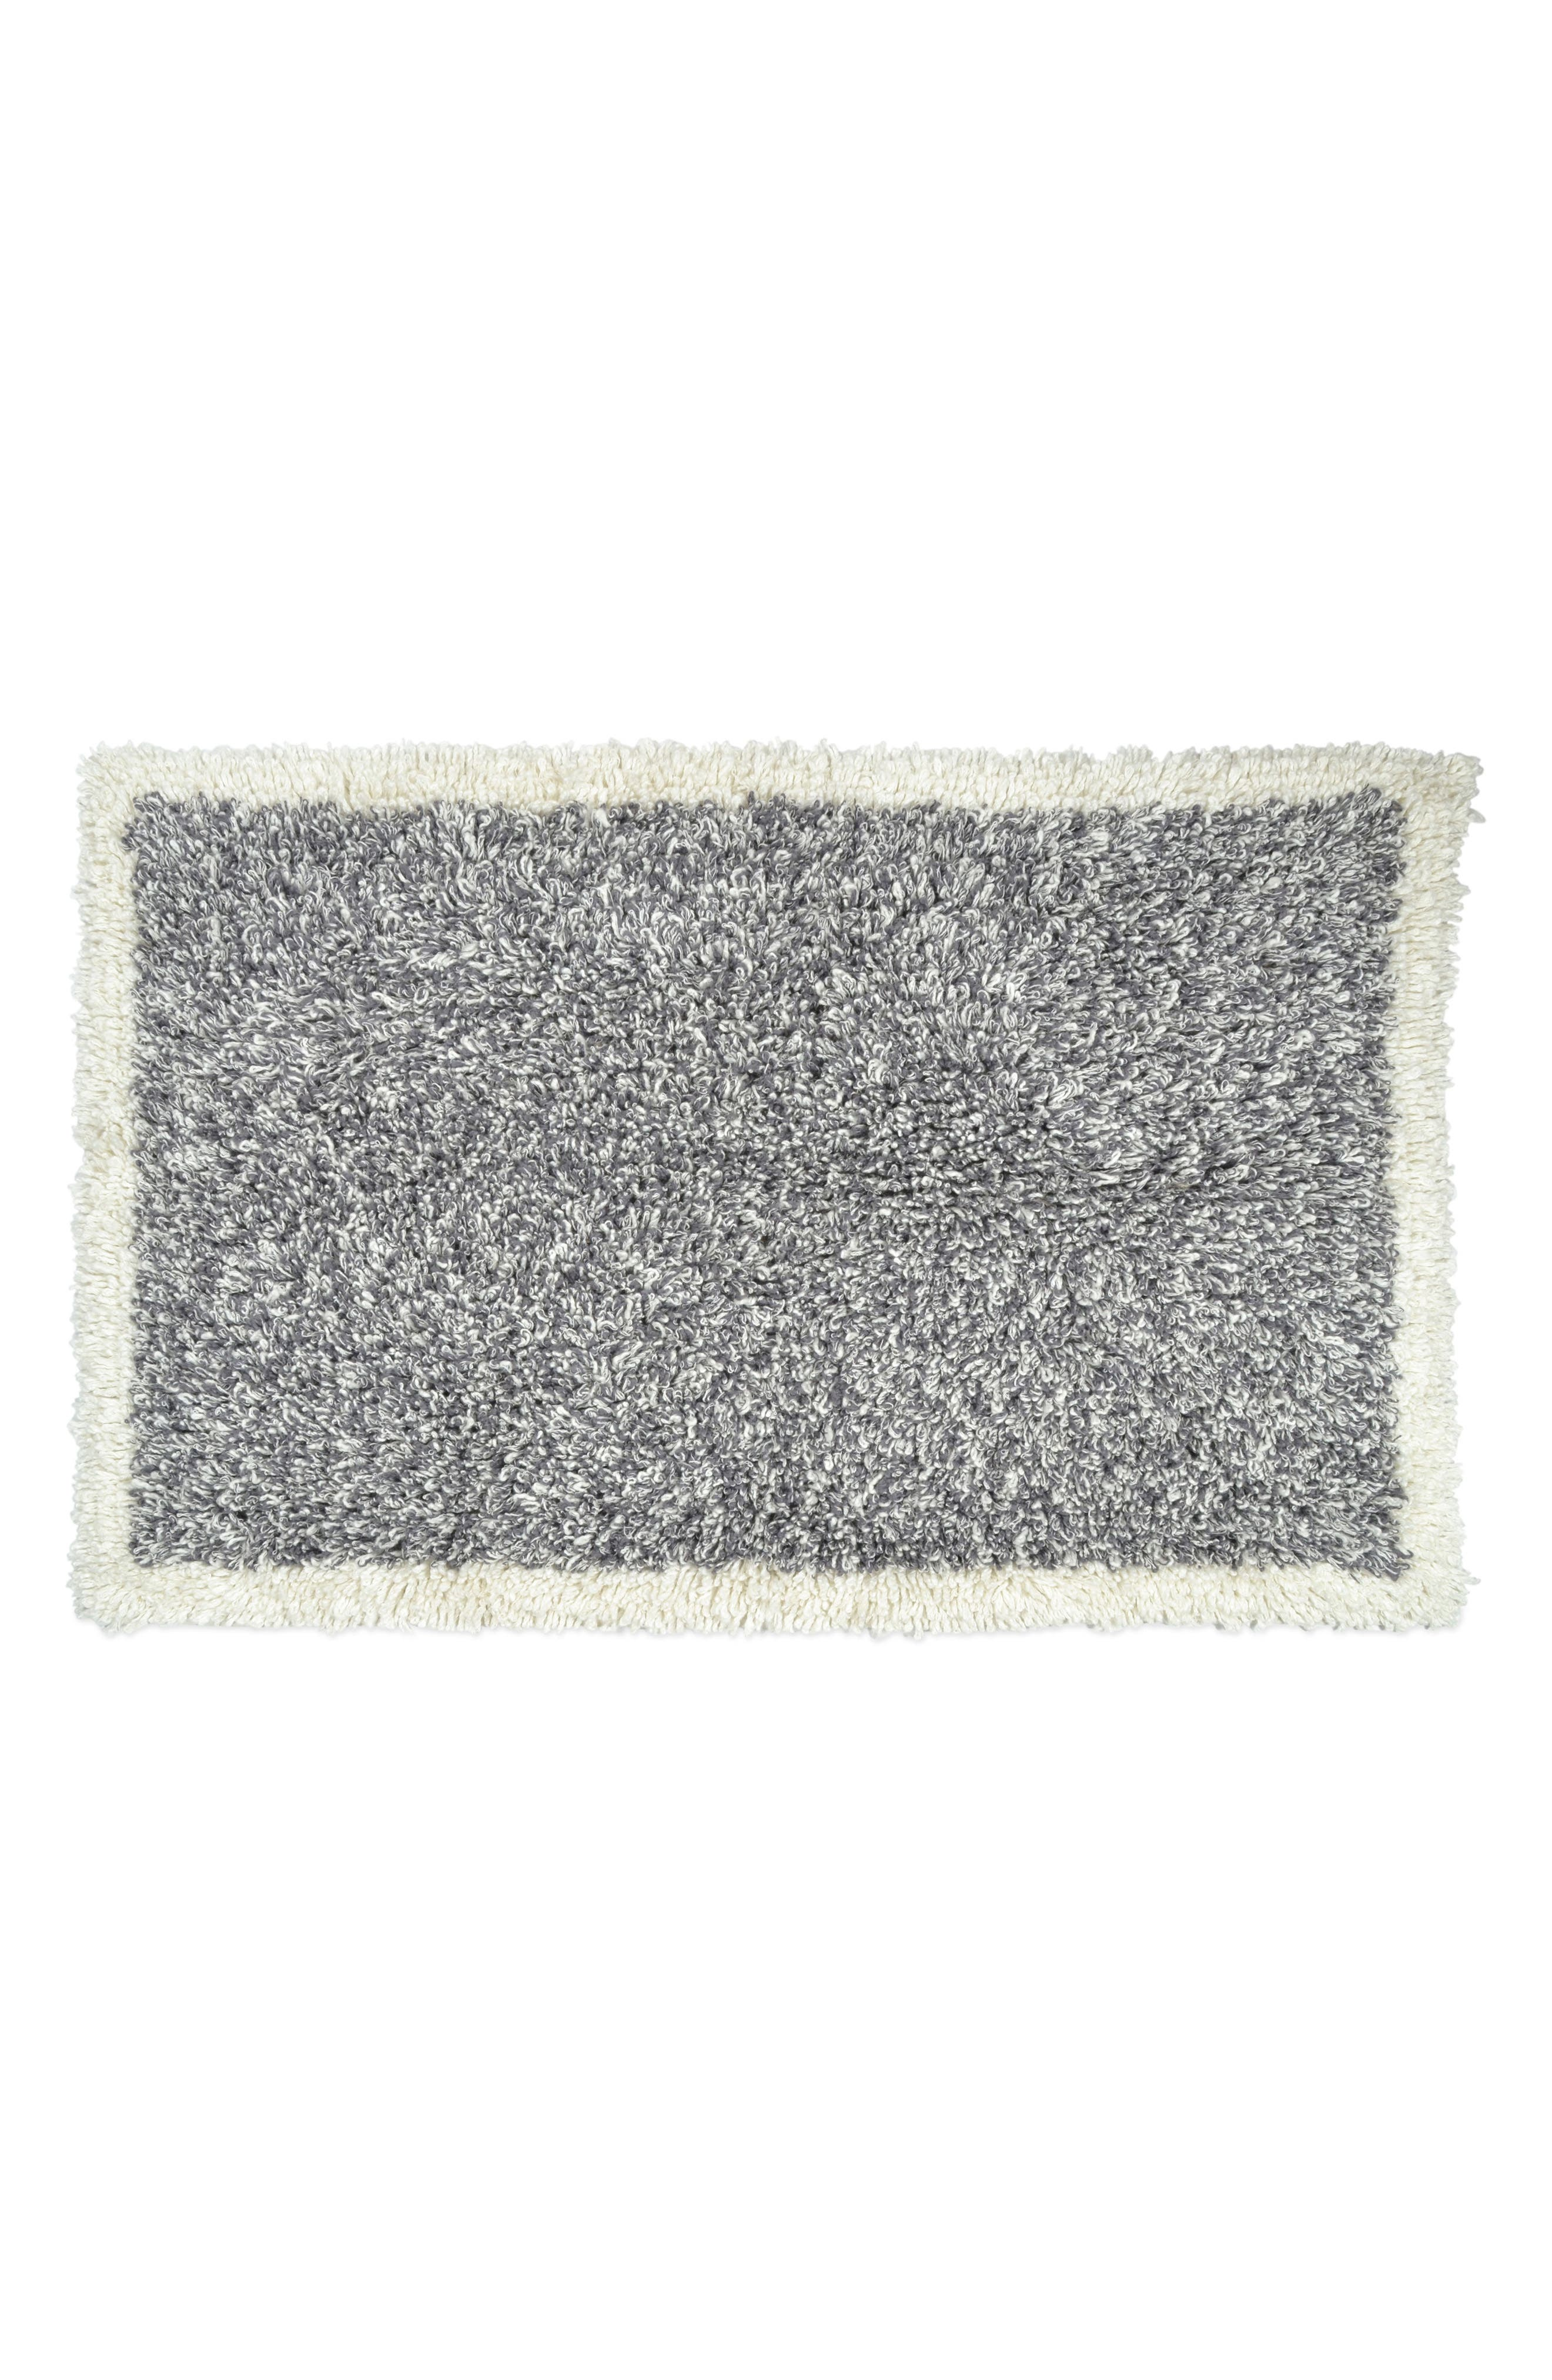 Pure Heathered Rug,                         Main,                         color, Grey/ White